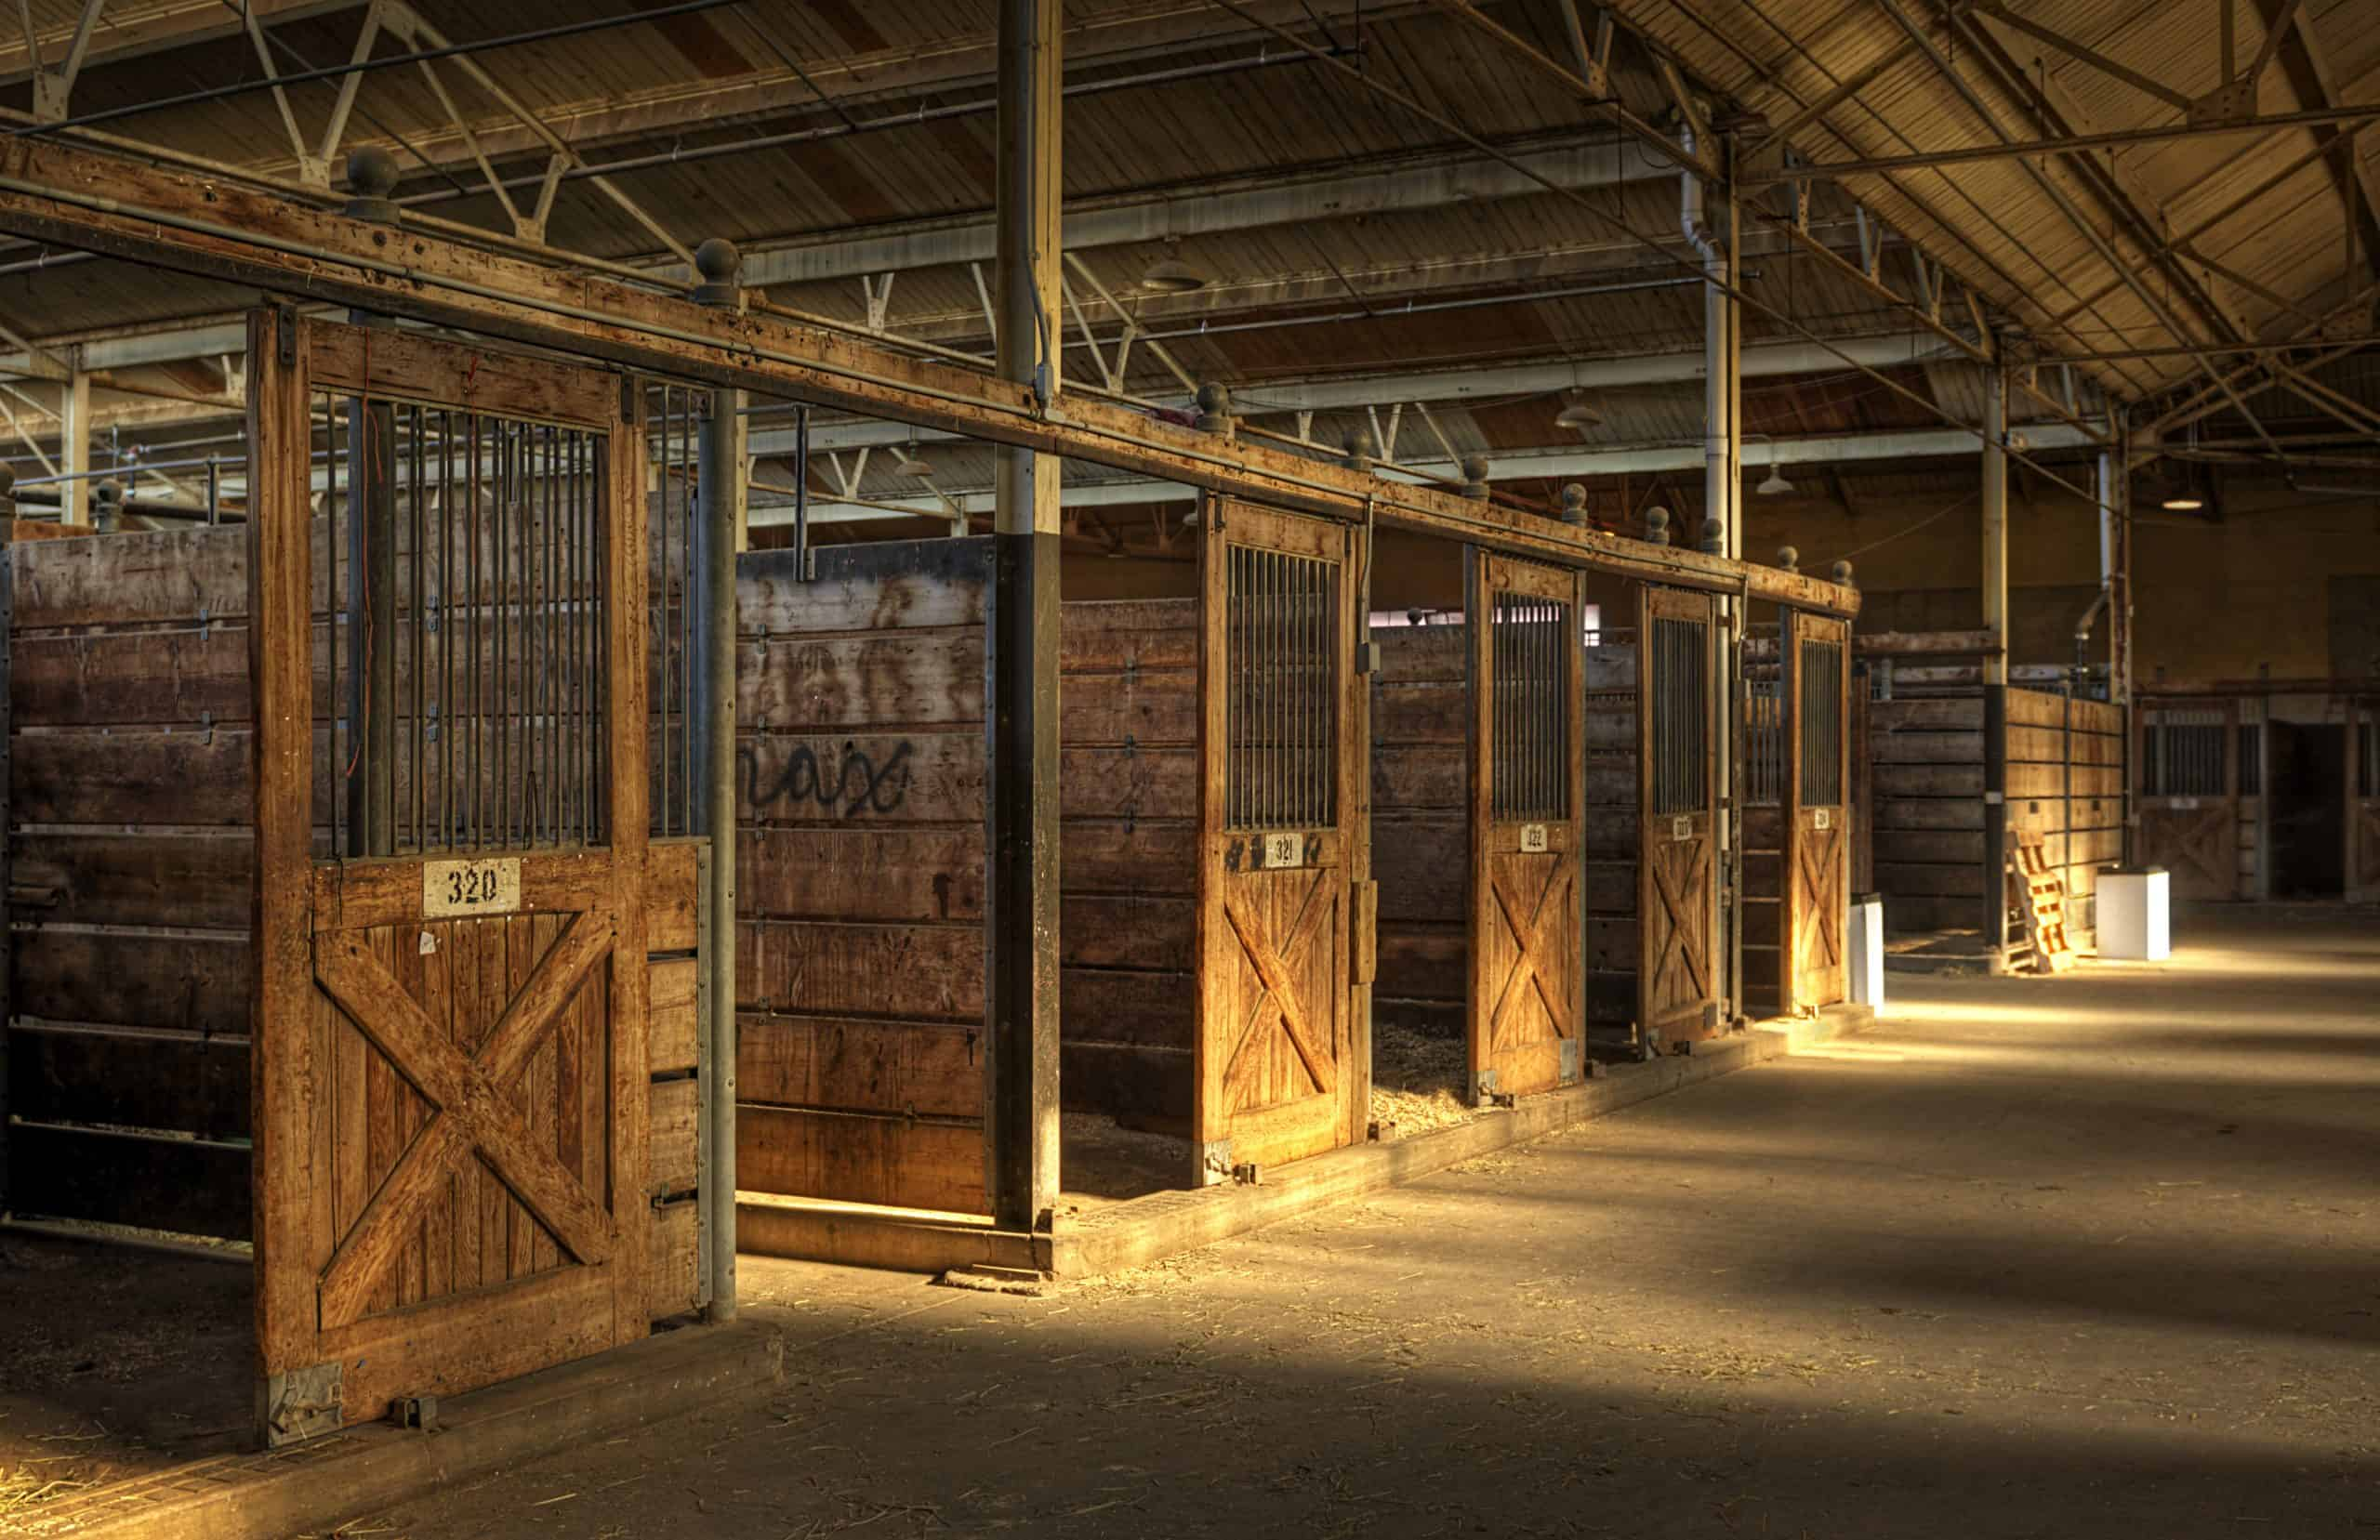 Empty Horse Barn - empty wooden stalls and light rays